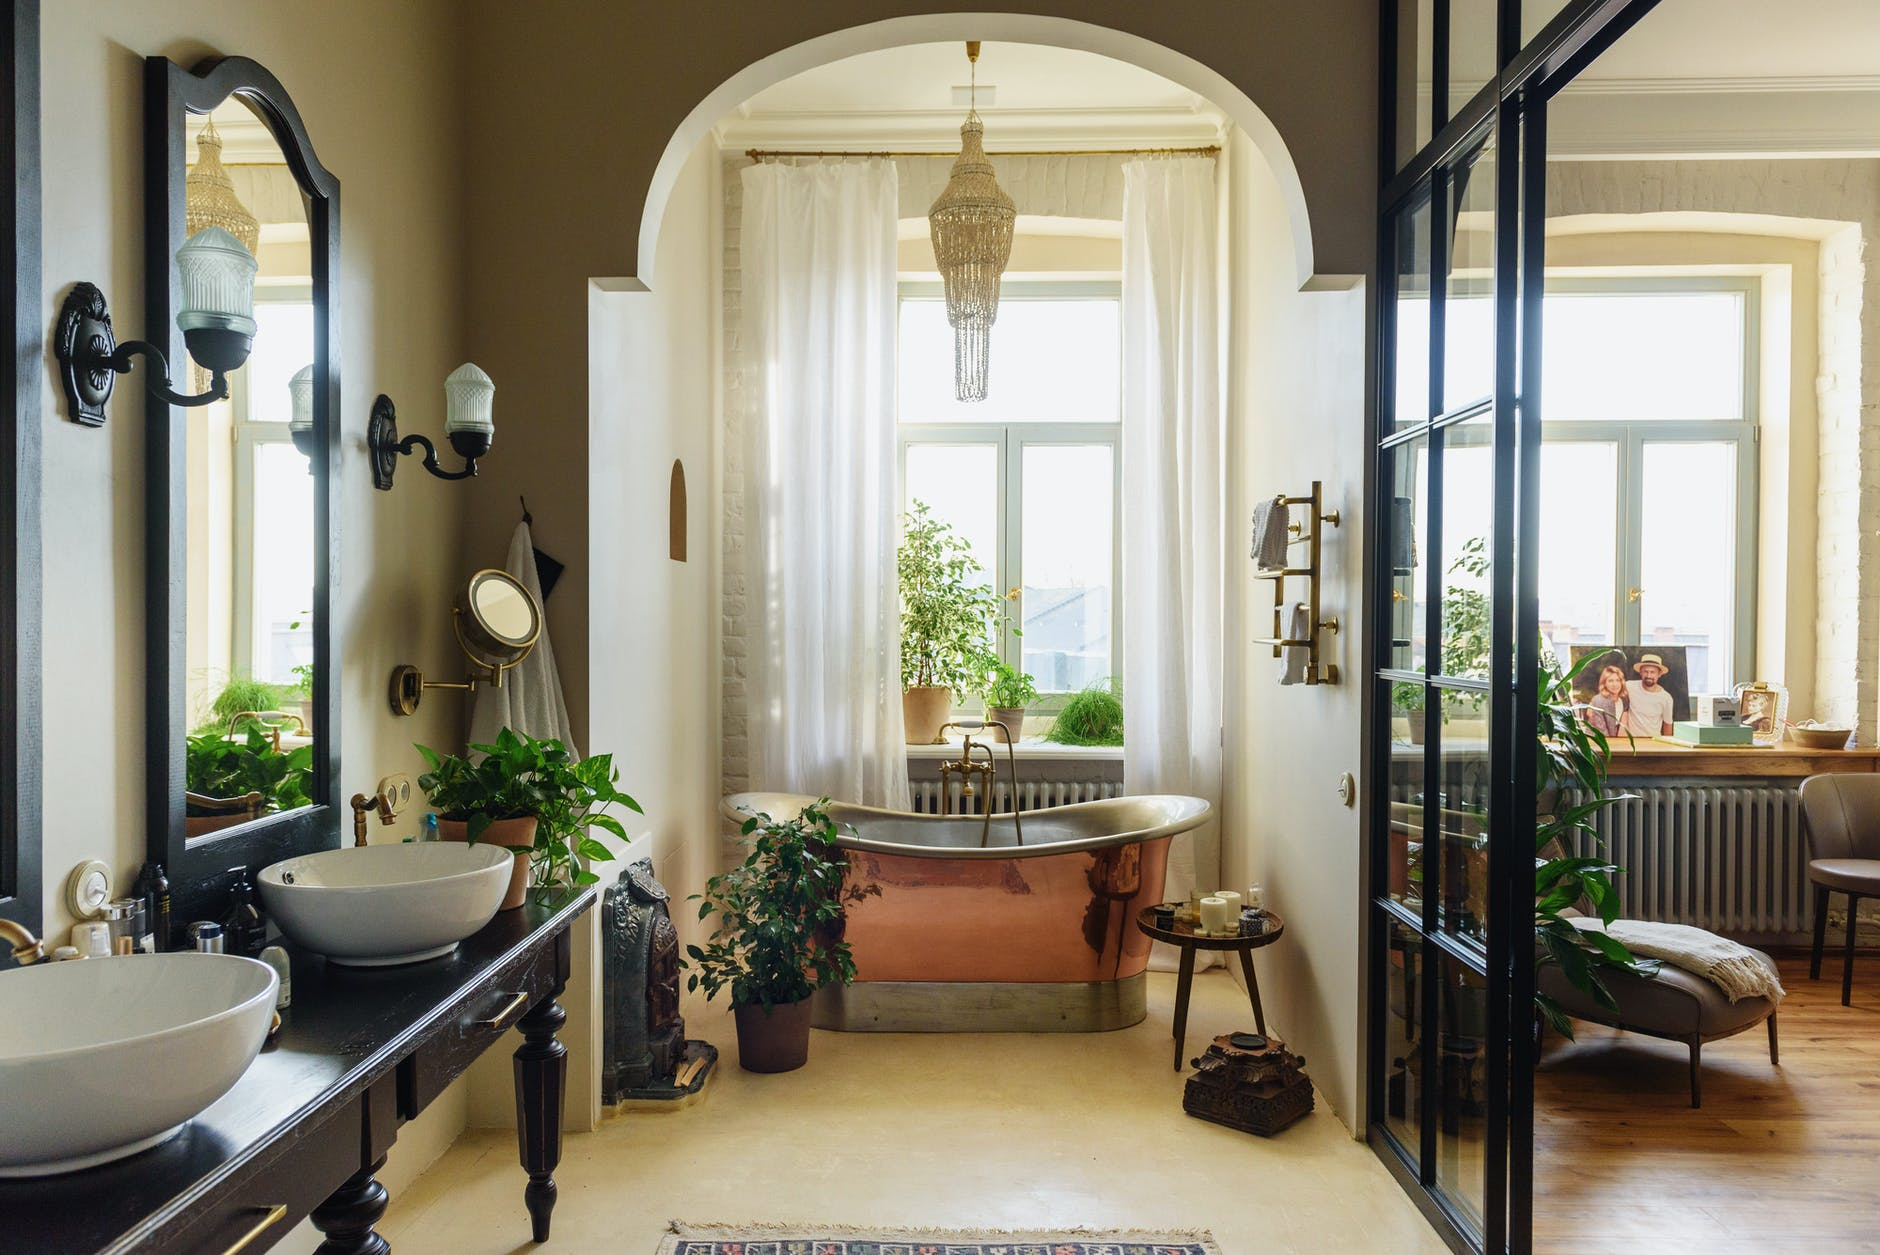 An urban looking bathroom, with a copper not fixed bath tub by a window.